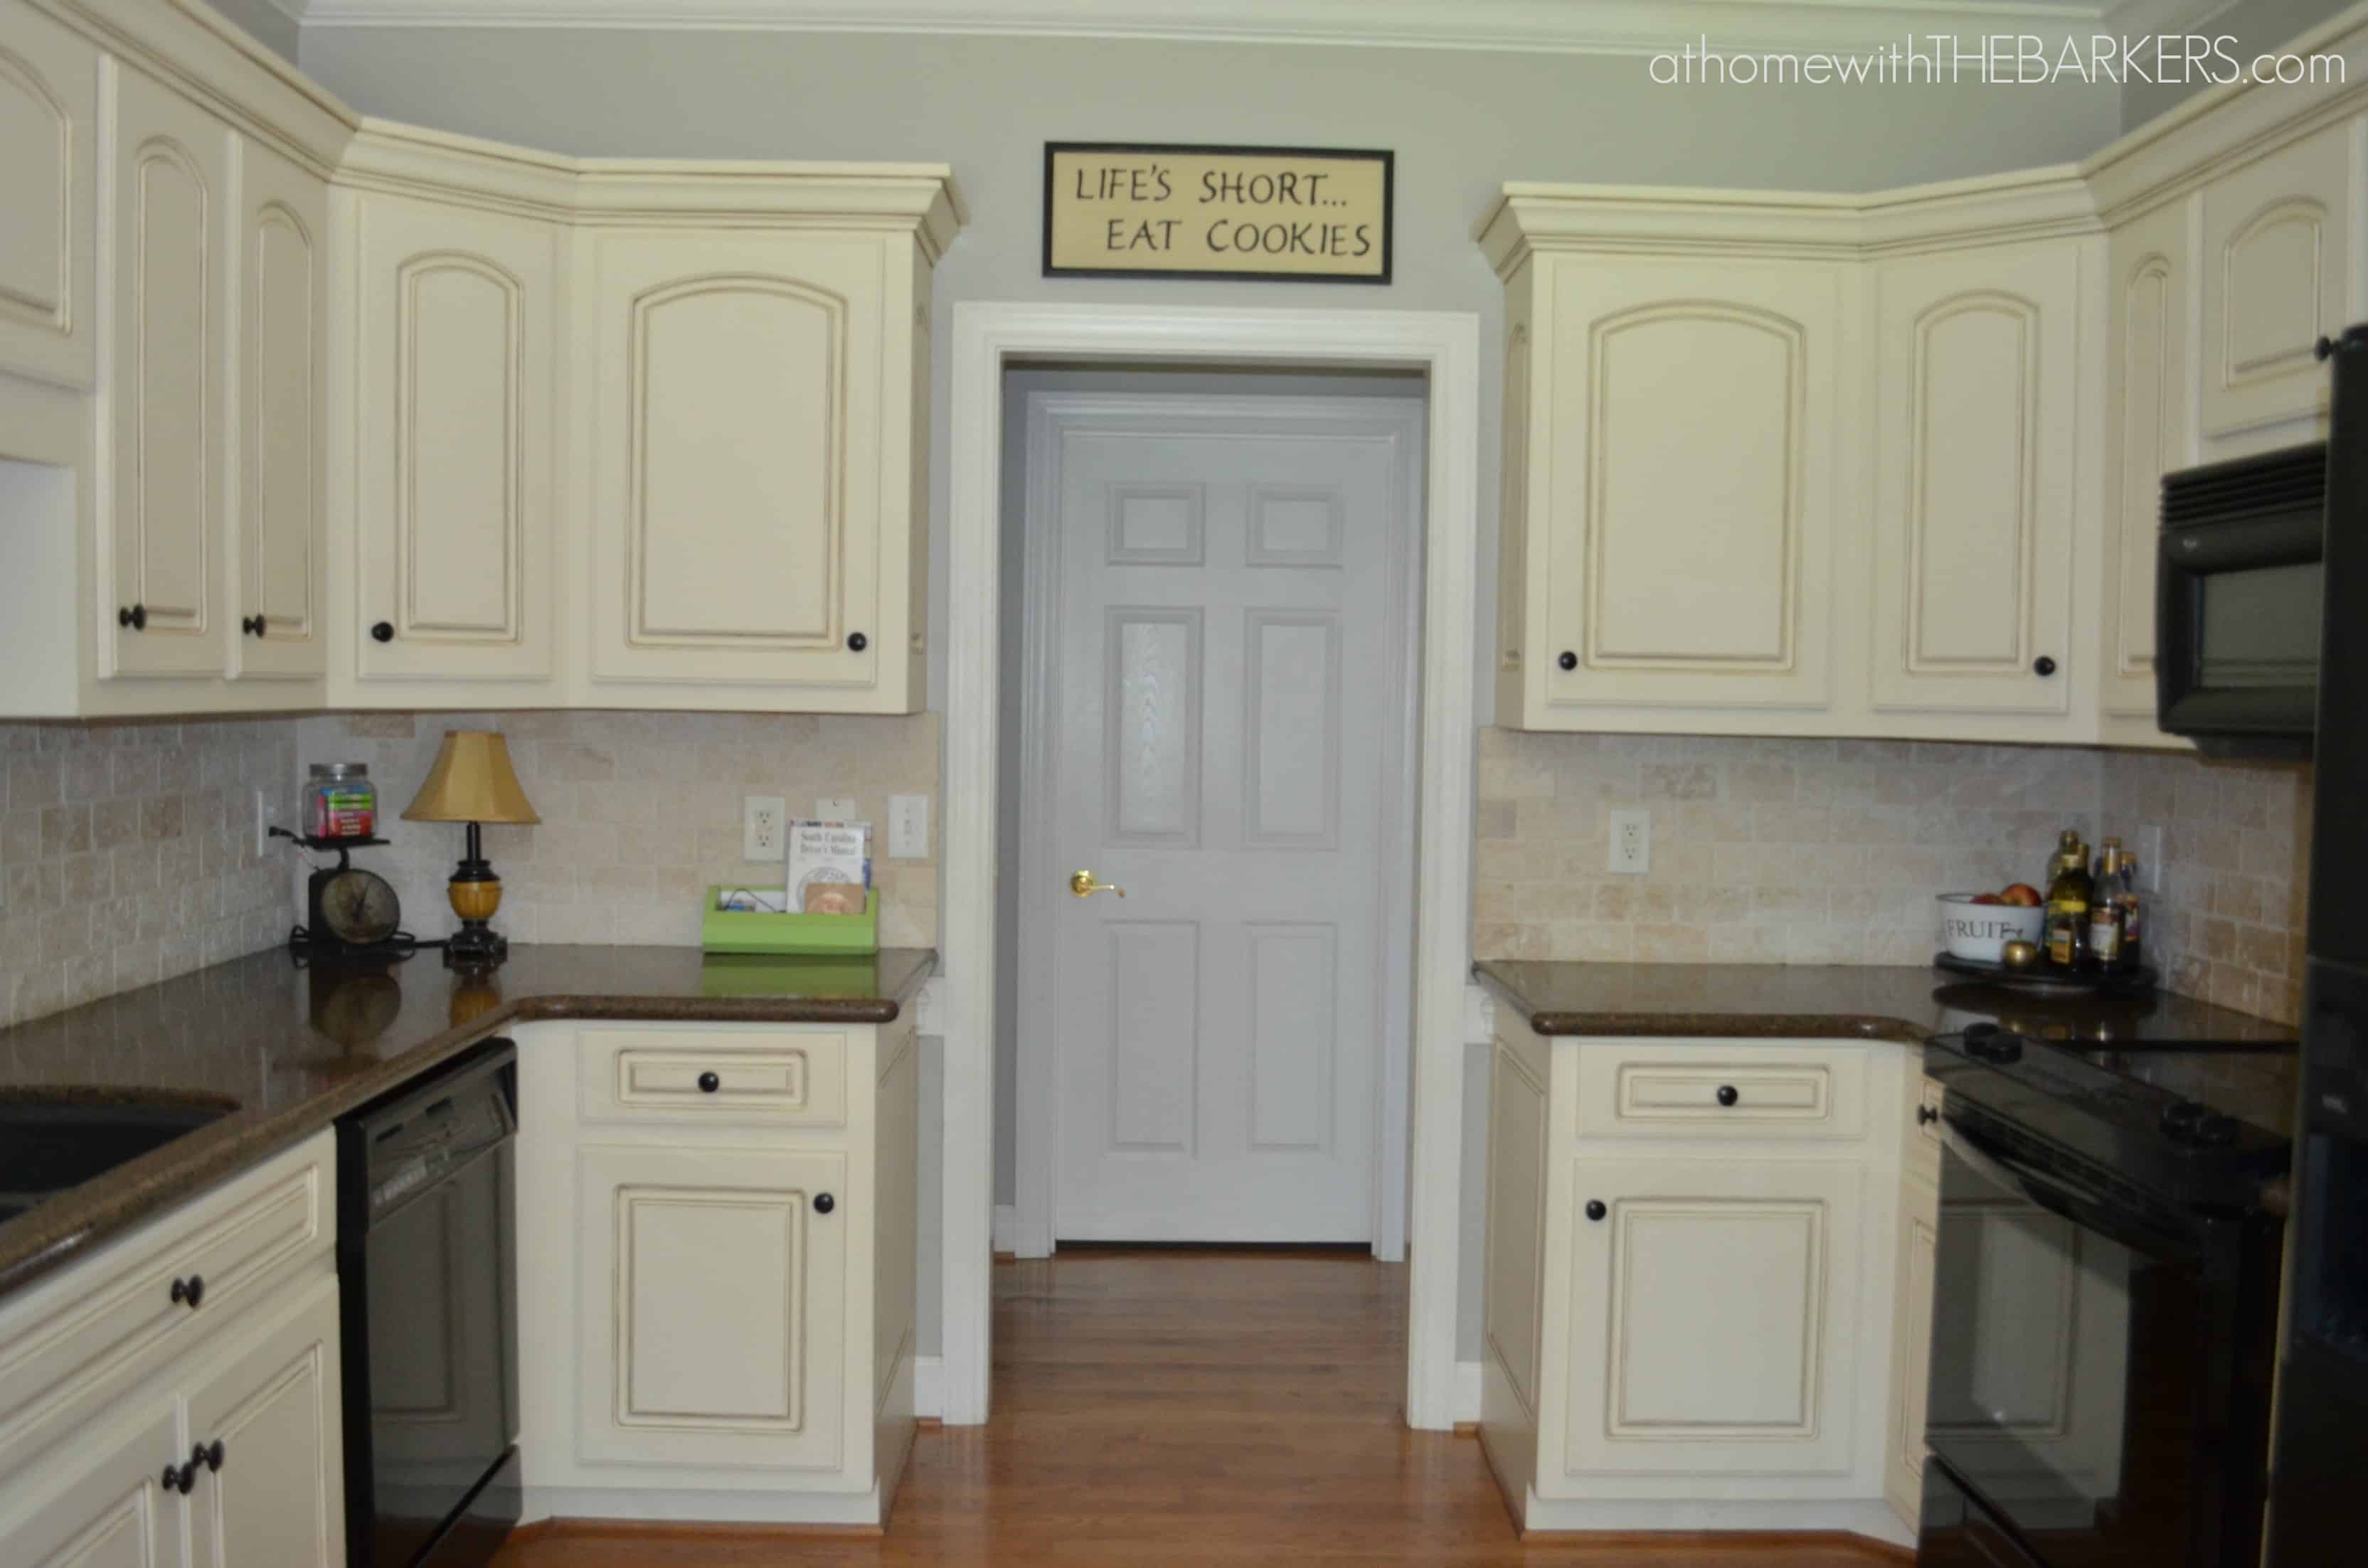 Kitchen cabinet makeover ideas on a budget images for Kitchen makeover ideas